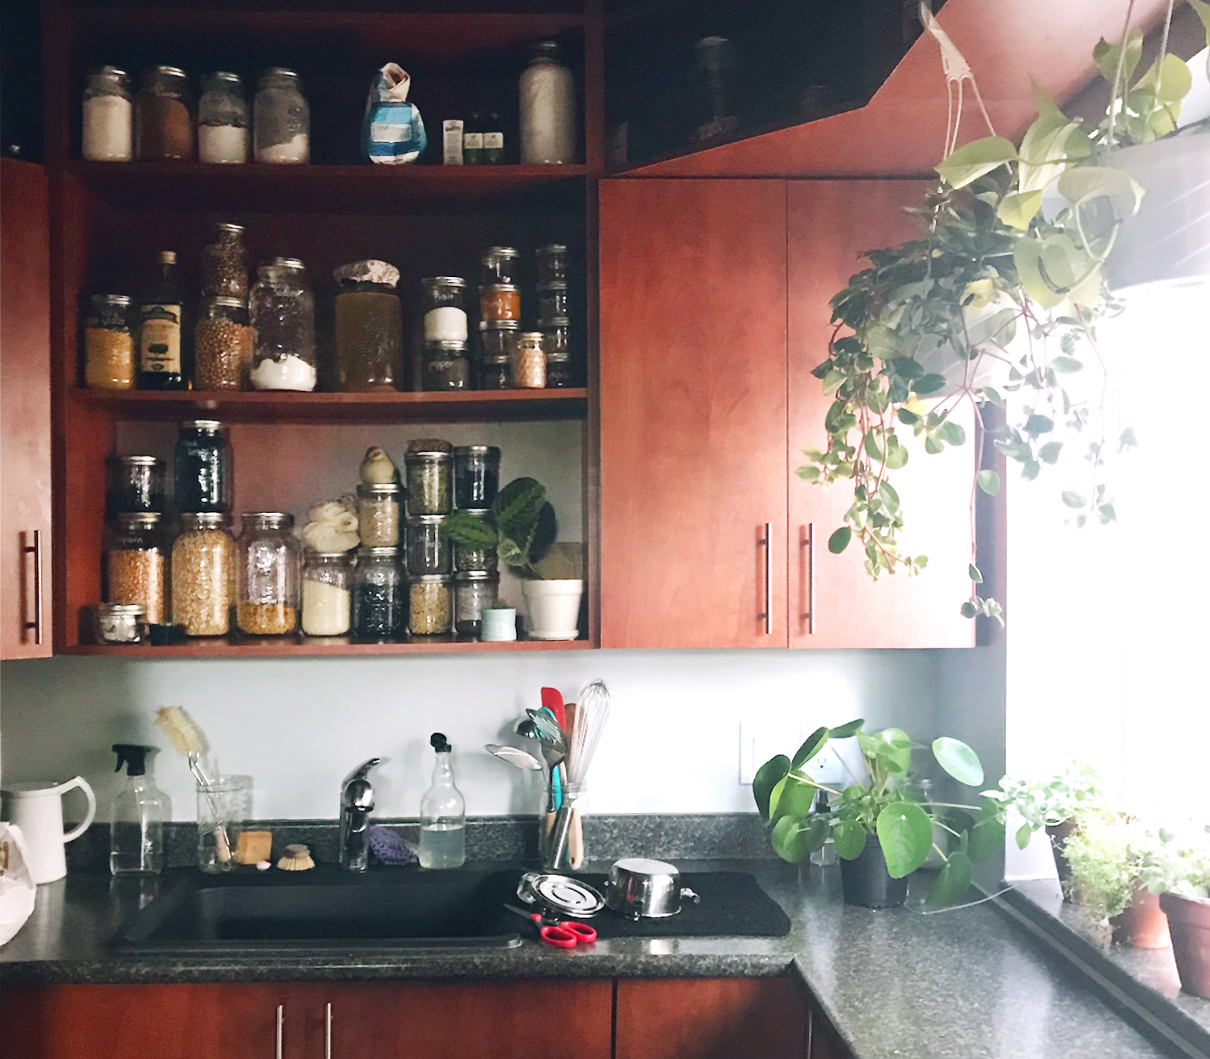 A zero waste kitchen with glass jars to store food